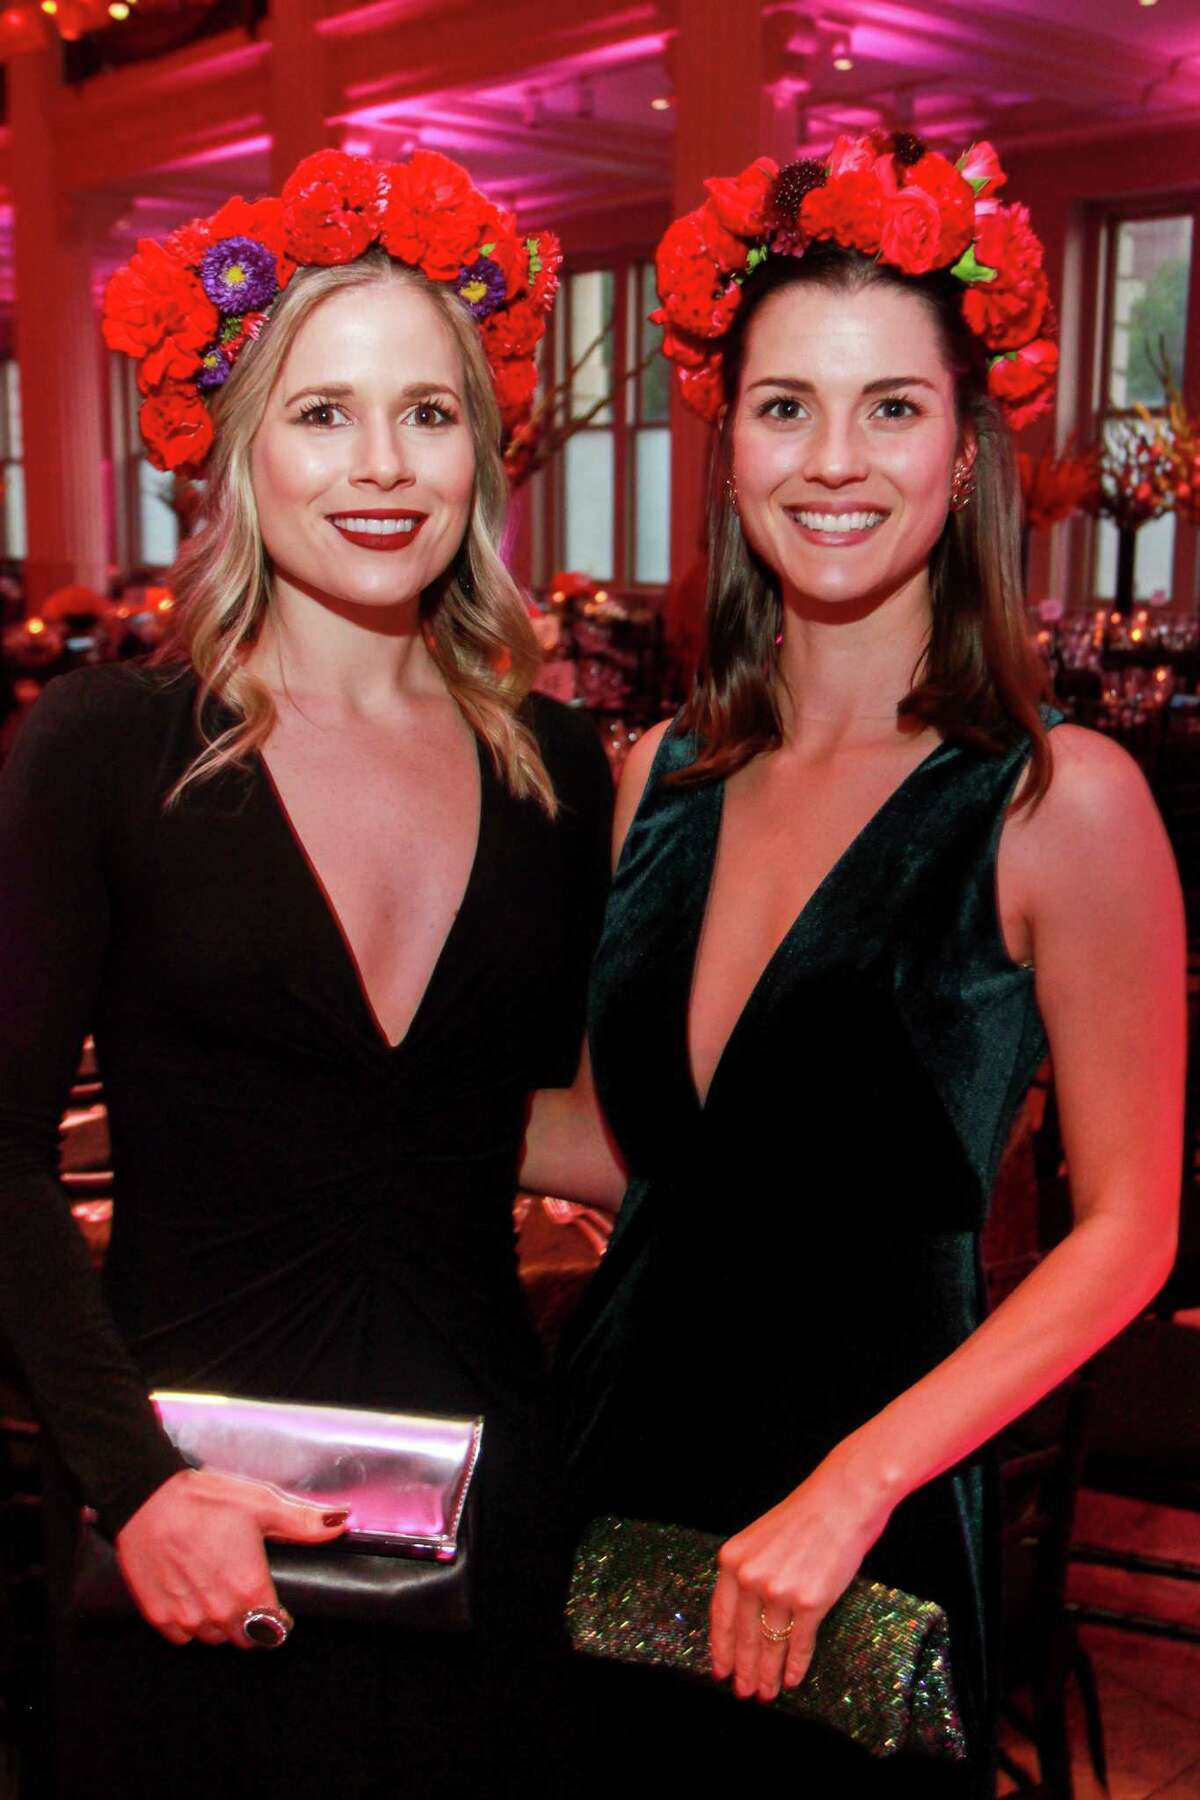 Ali Guill, left, and Rebekah Guill at the Children's Museum gala,